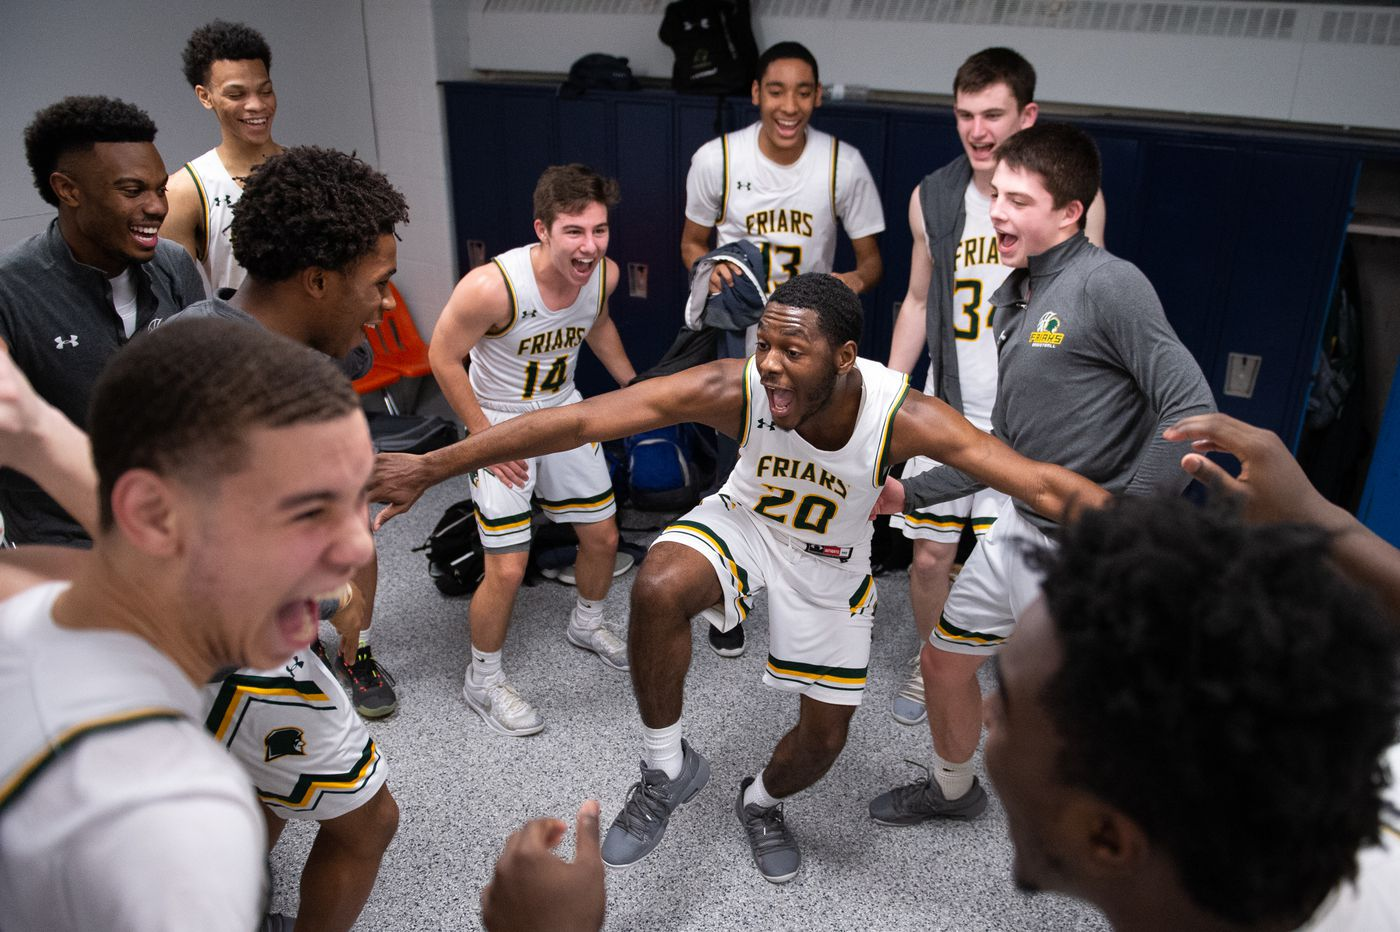 PIAA Class 4A boys' playoffs: Tyreese Watson leads Bonner-Prendie past Archbishop Carroll in semifinal at both ends of the court